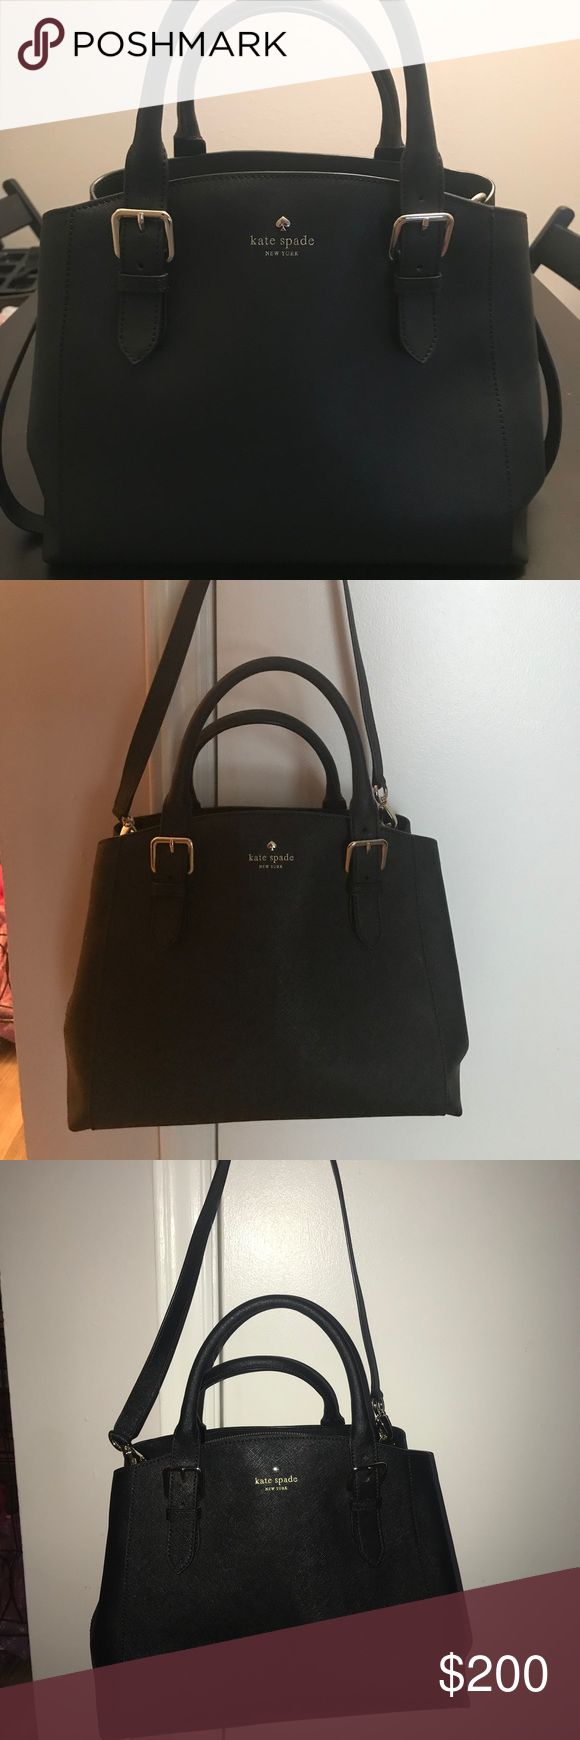 Kate Spade Black Bag Excellent condition!! Shorter strap is a 5 inch drop and the longest strap is a 14 inch drop! kate spade Bags